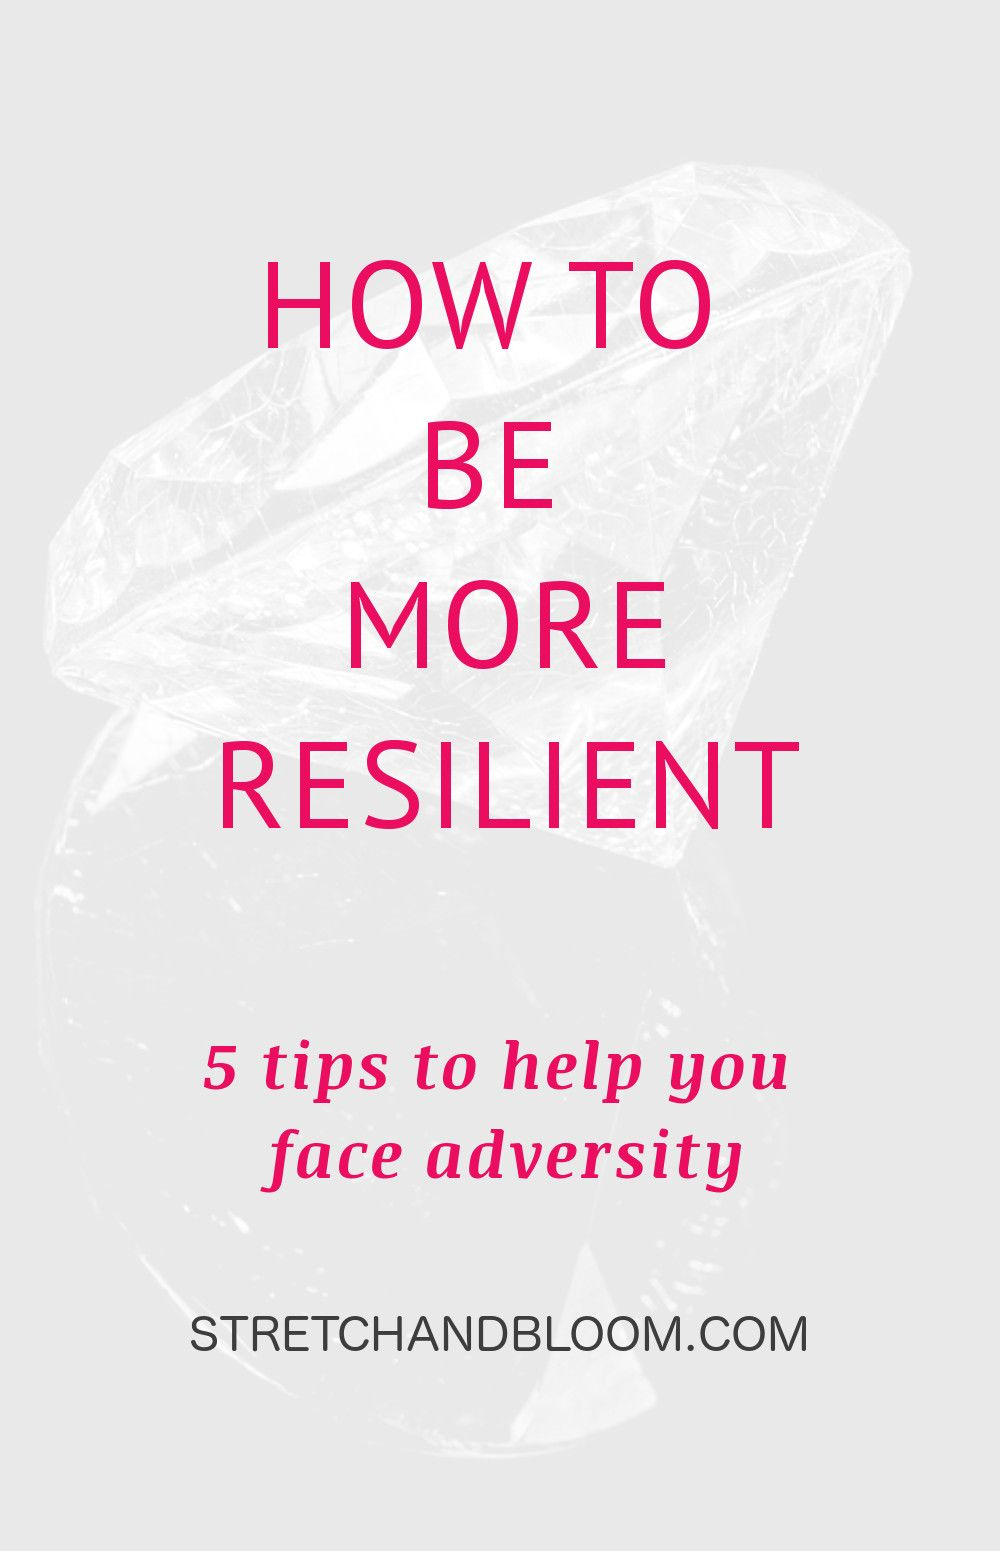 How to be more resilient in the face of adversity - STRETCH + BLOOM #personalgrowth